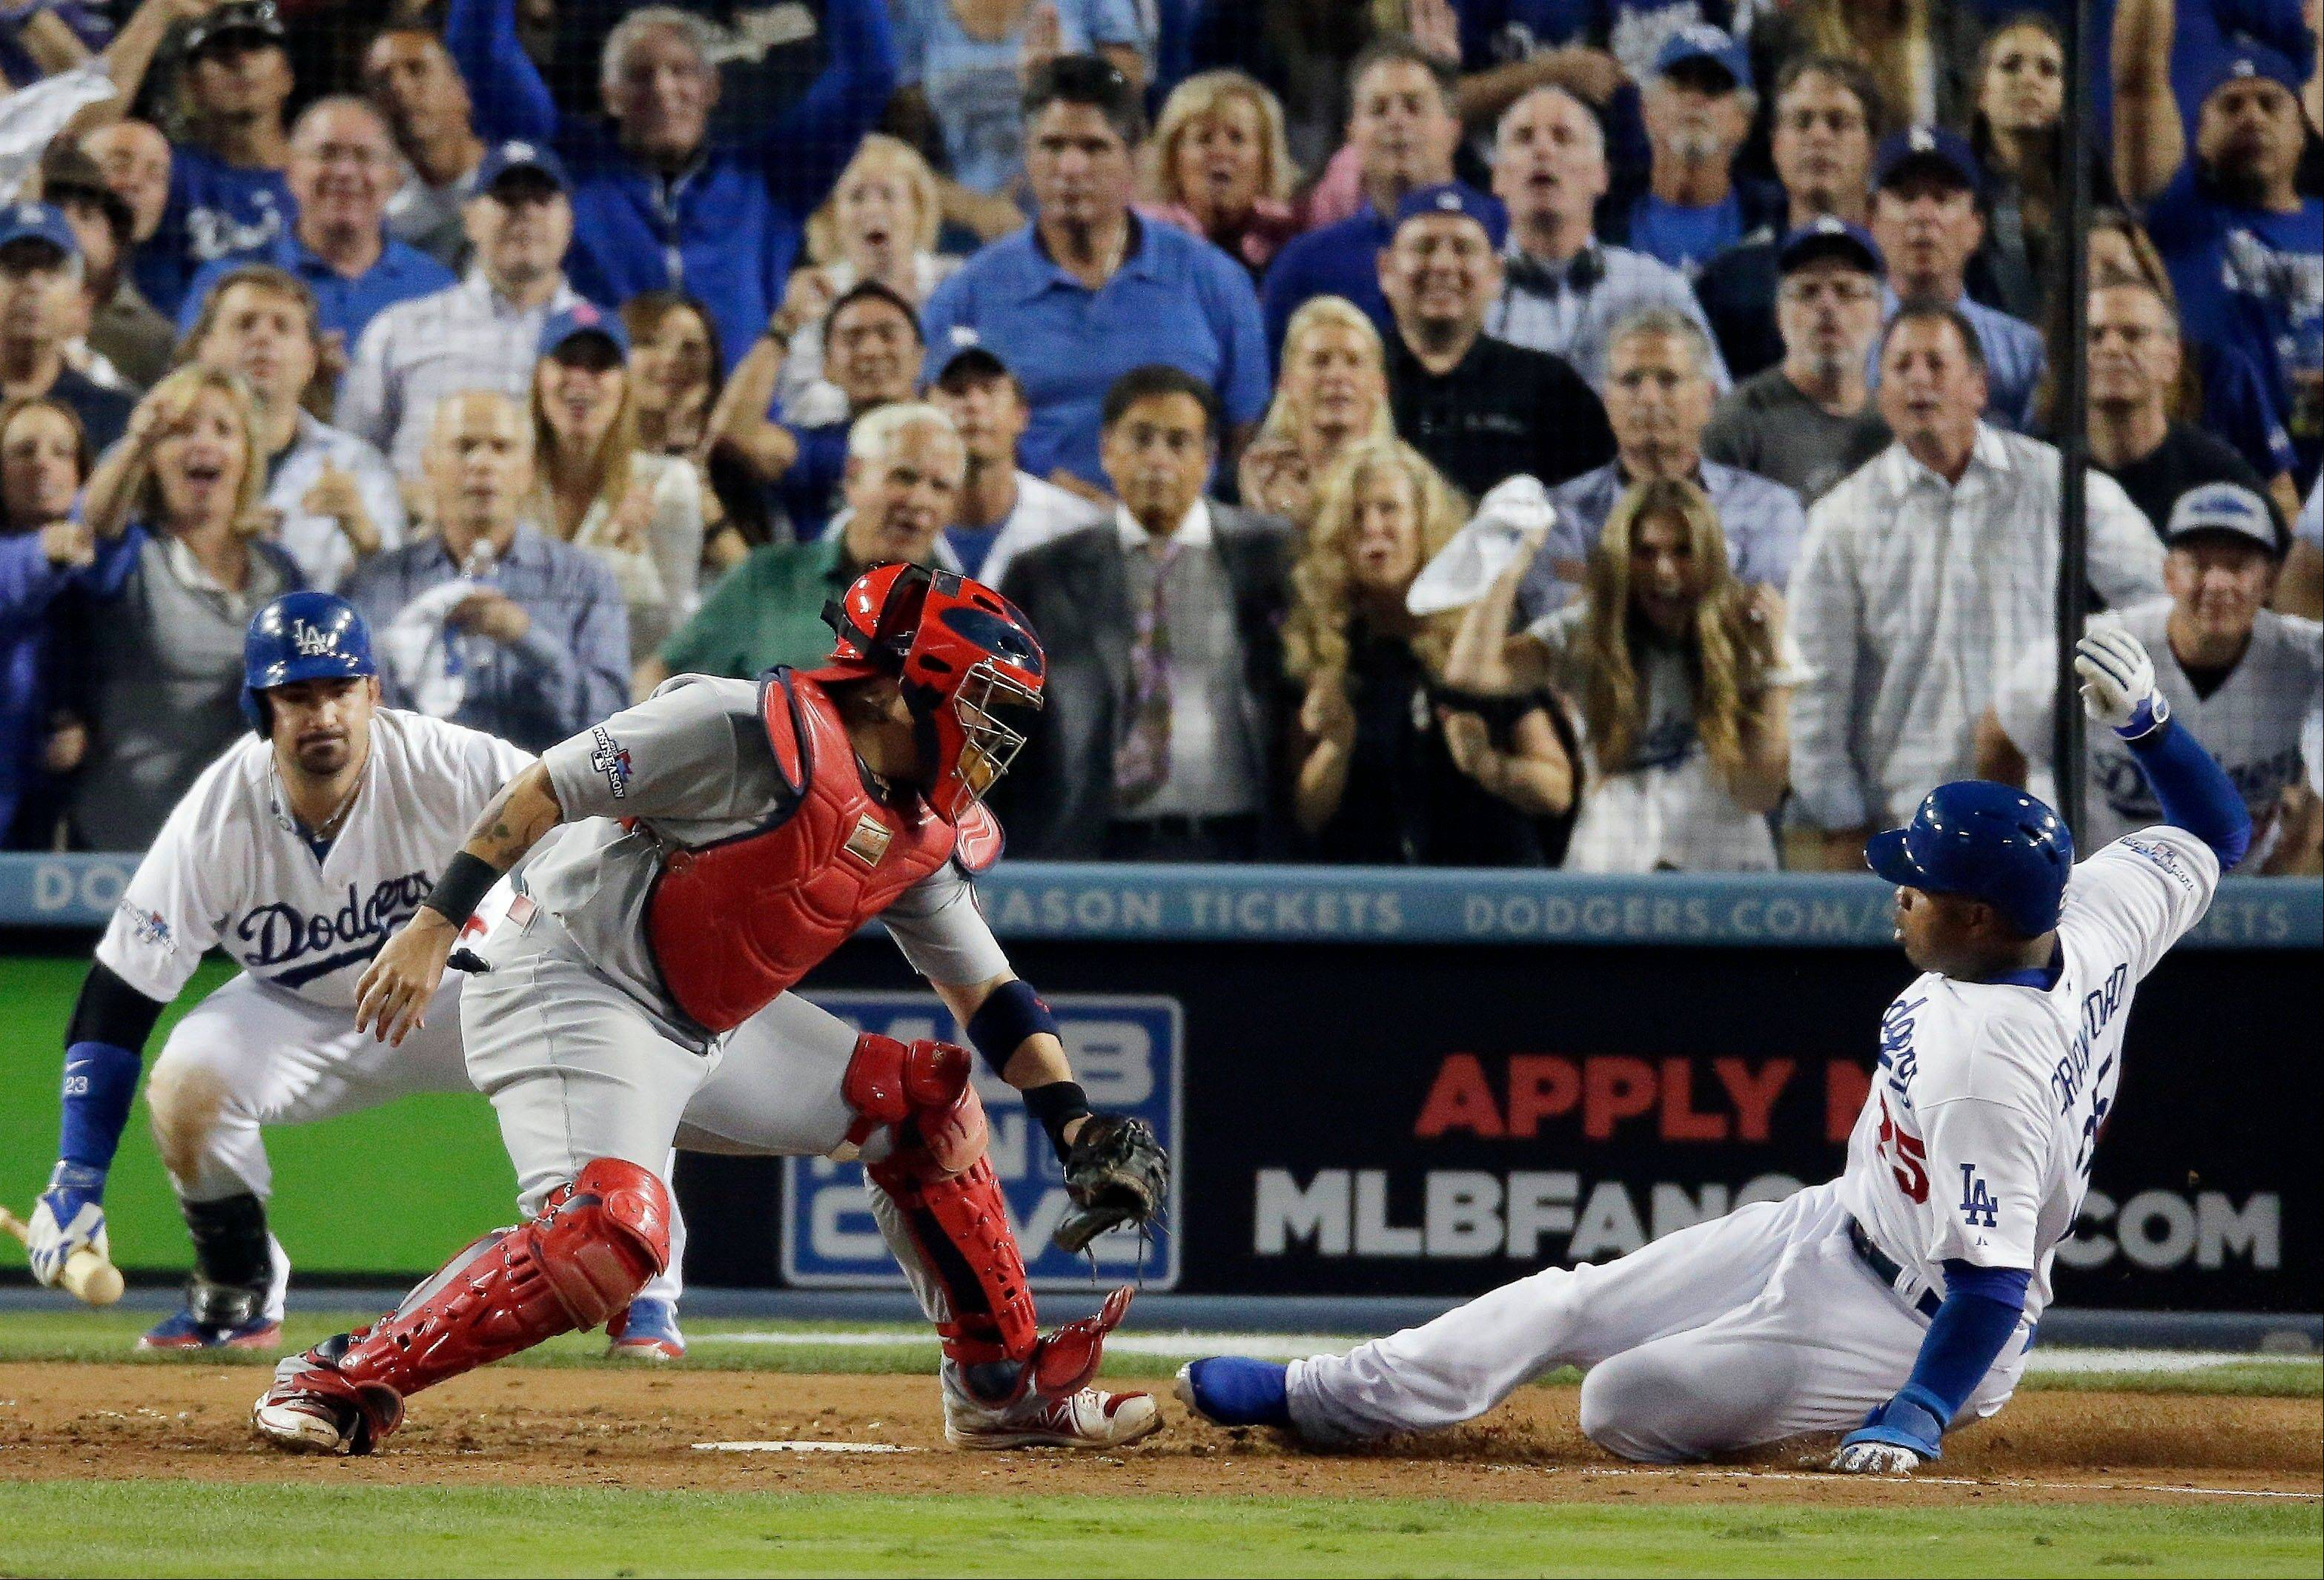 The Dodgers' Carl Crawford slides safely past St. Louis Cardinals catcher Yadier Molina during the eighth inning Monday in Game 3.